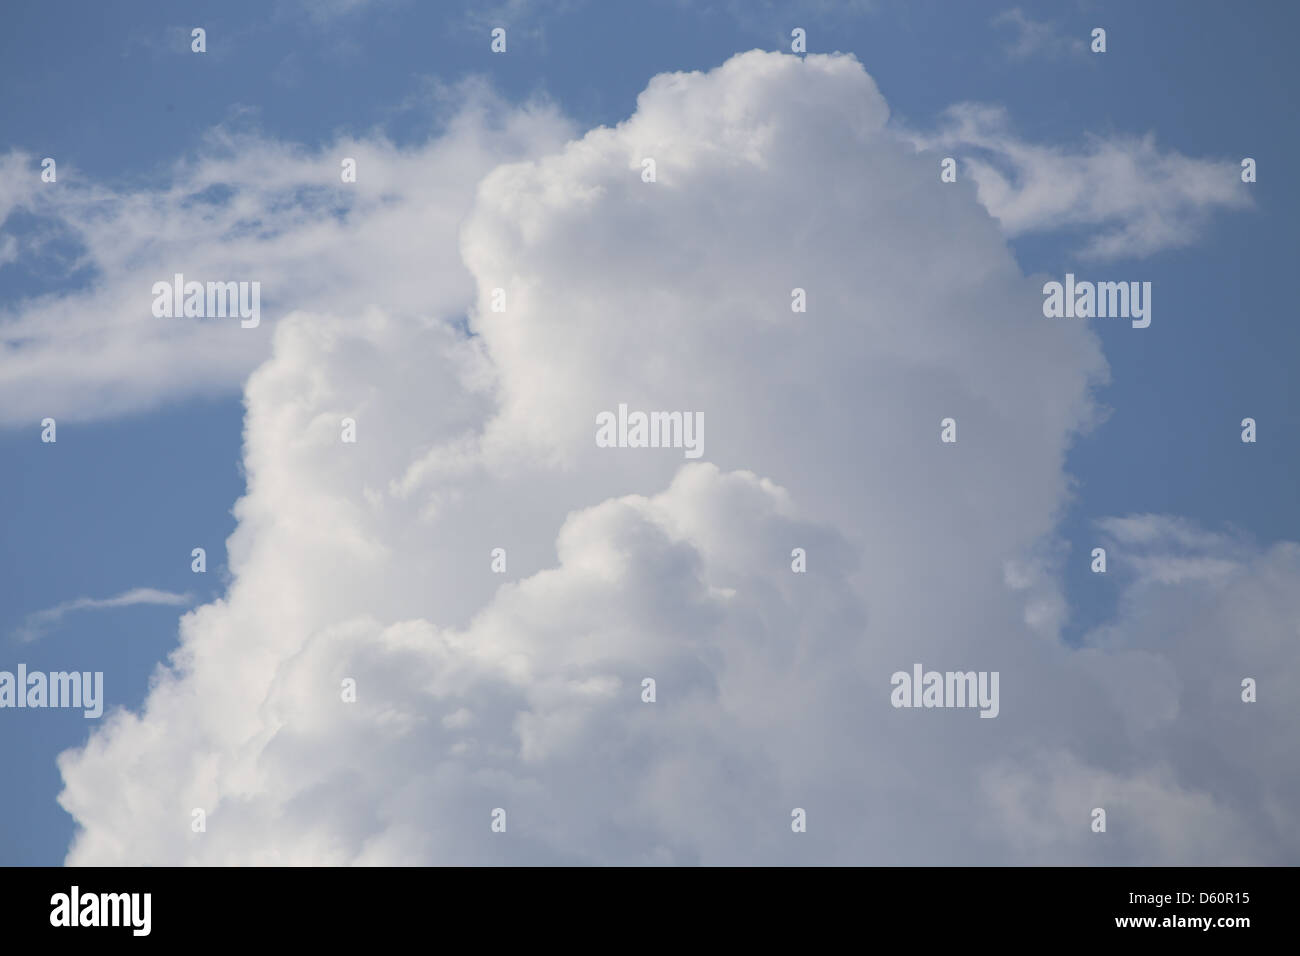 A cumulus cloud that is building to become a thunder head or cumulonimbus cloud - Stock Image